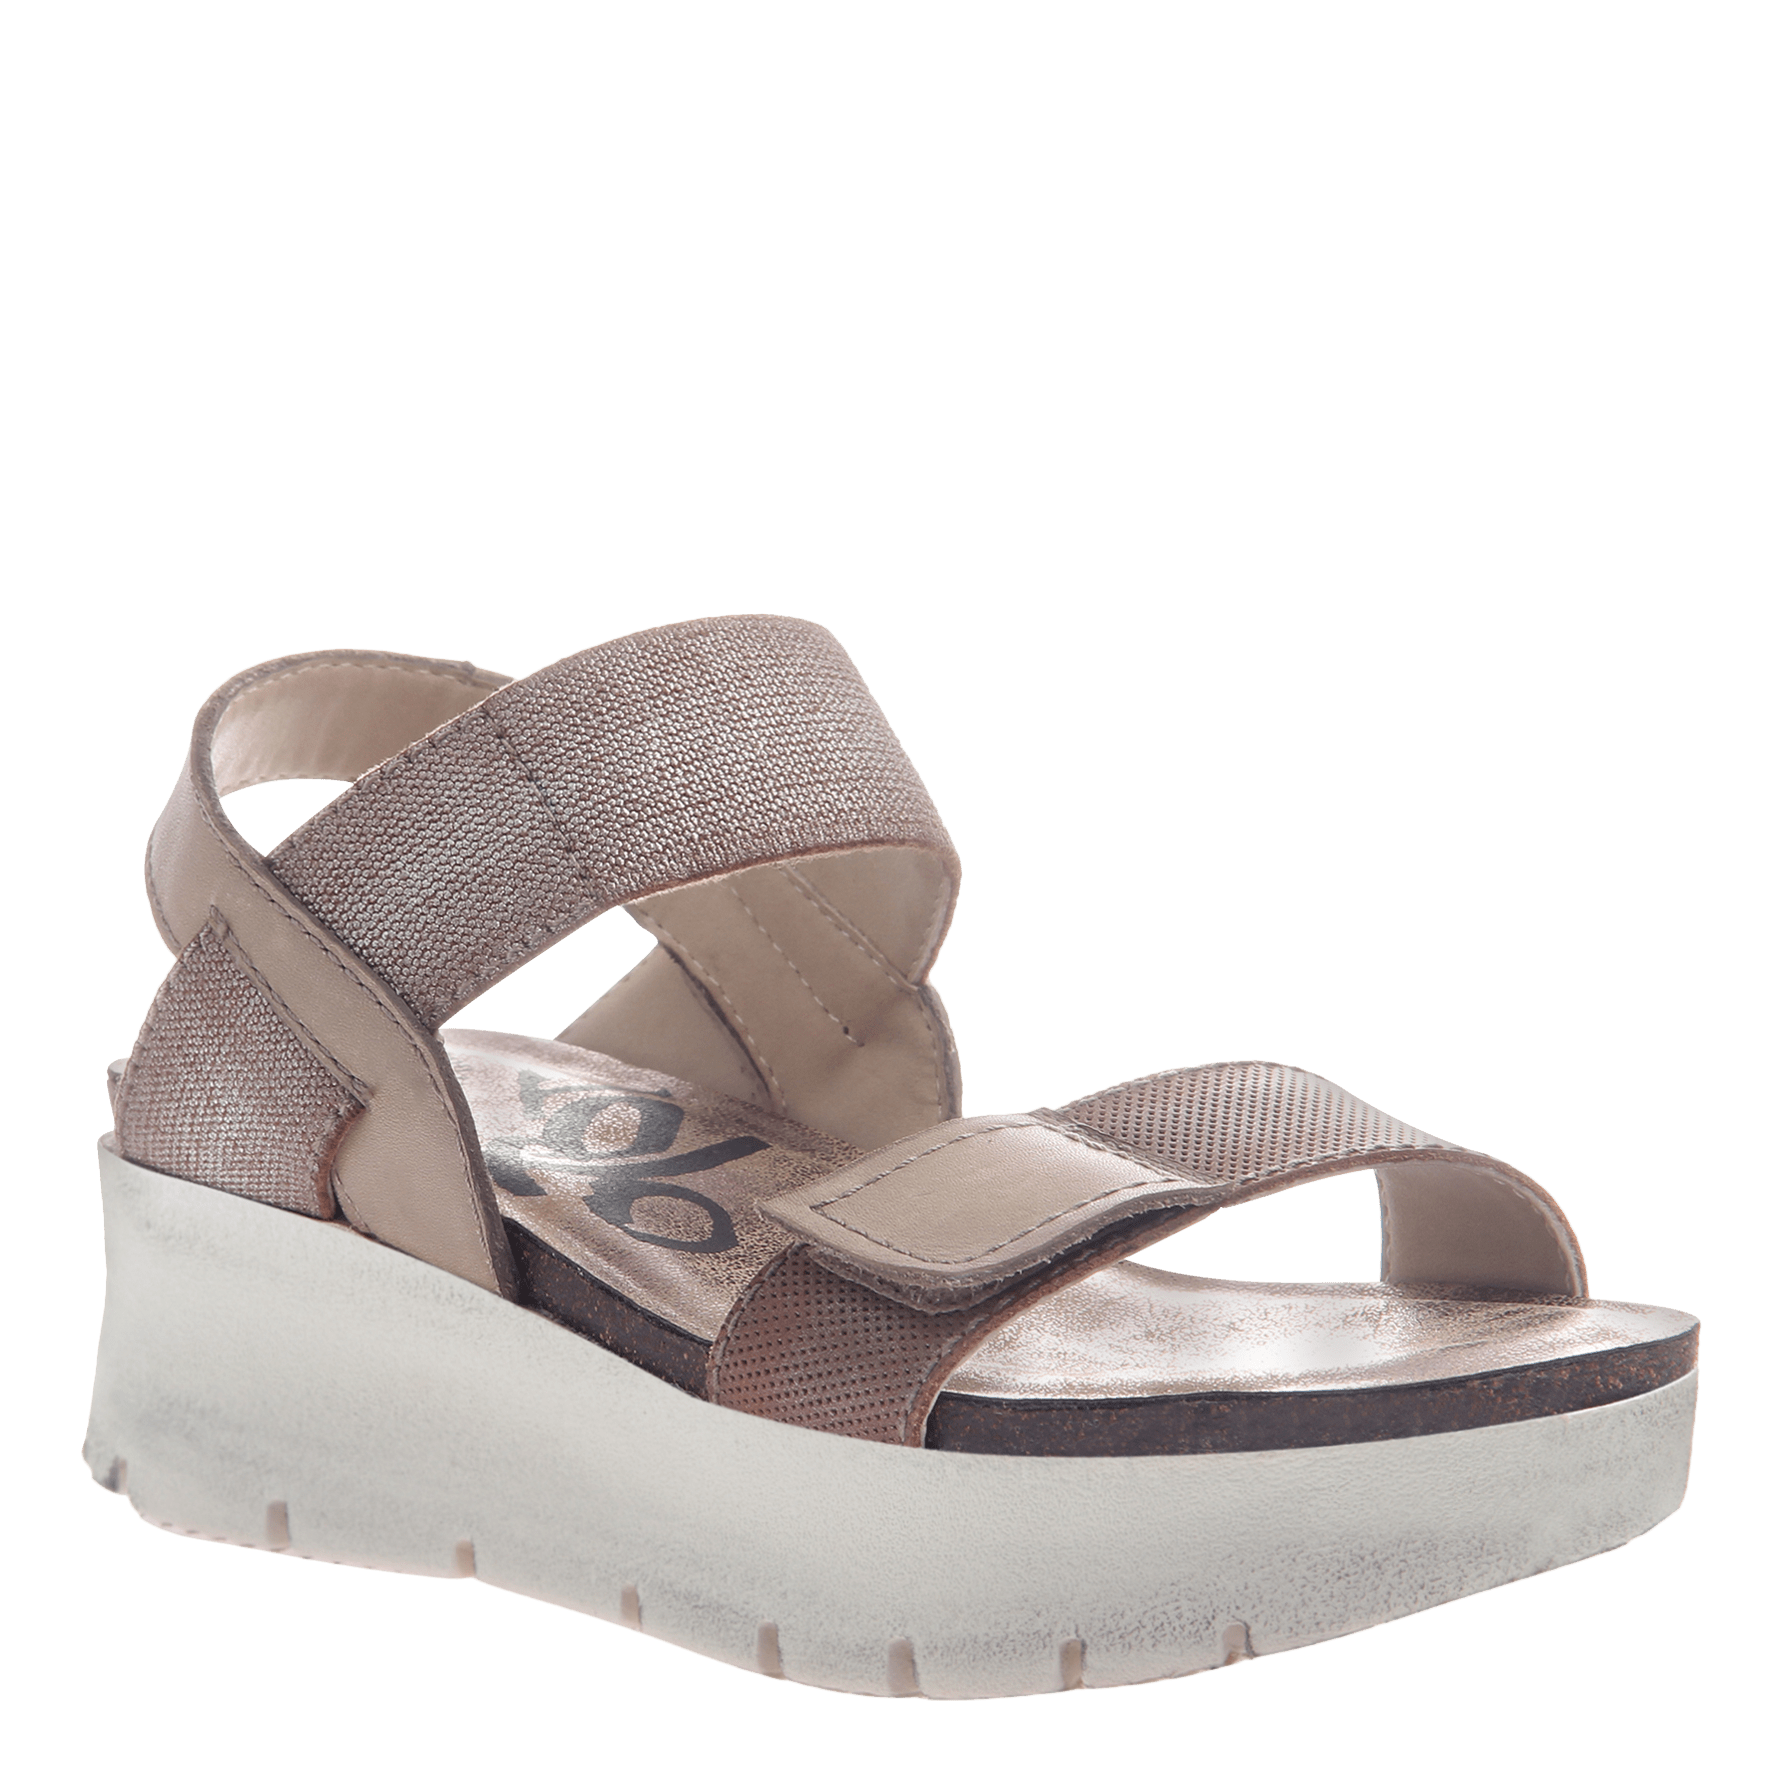 In Sandals Silver Wedge Nova Nova nk8XP0Ow